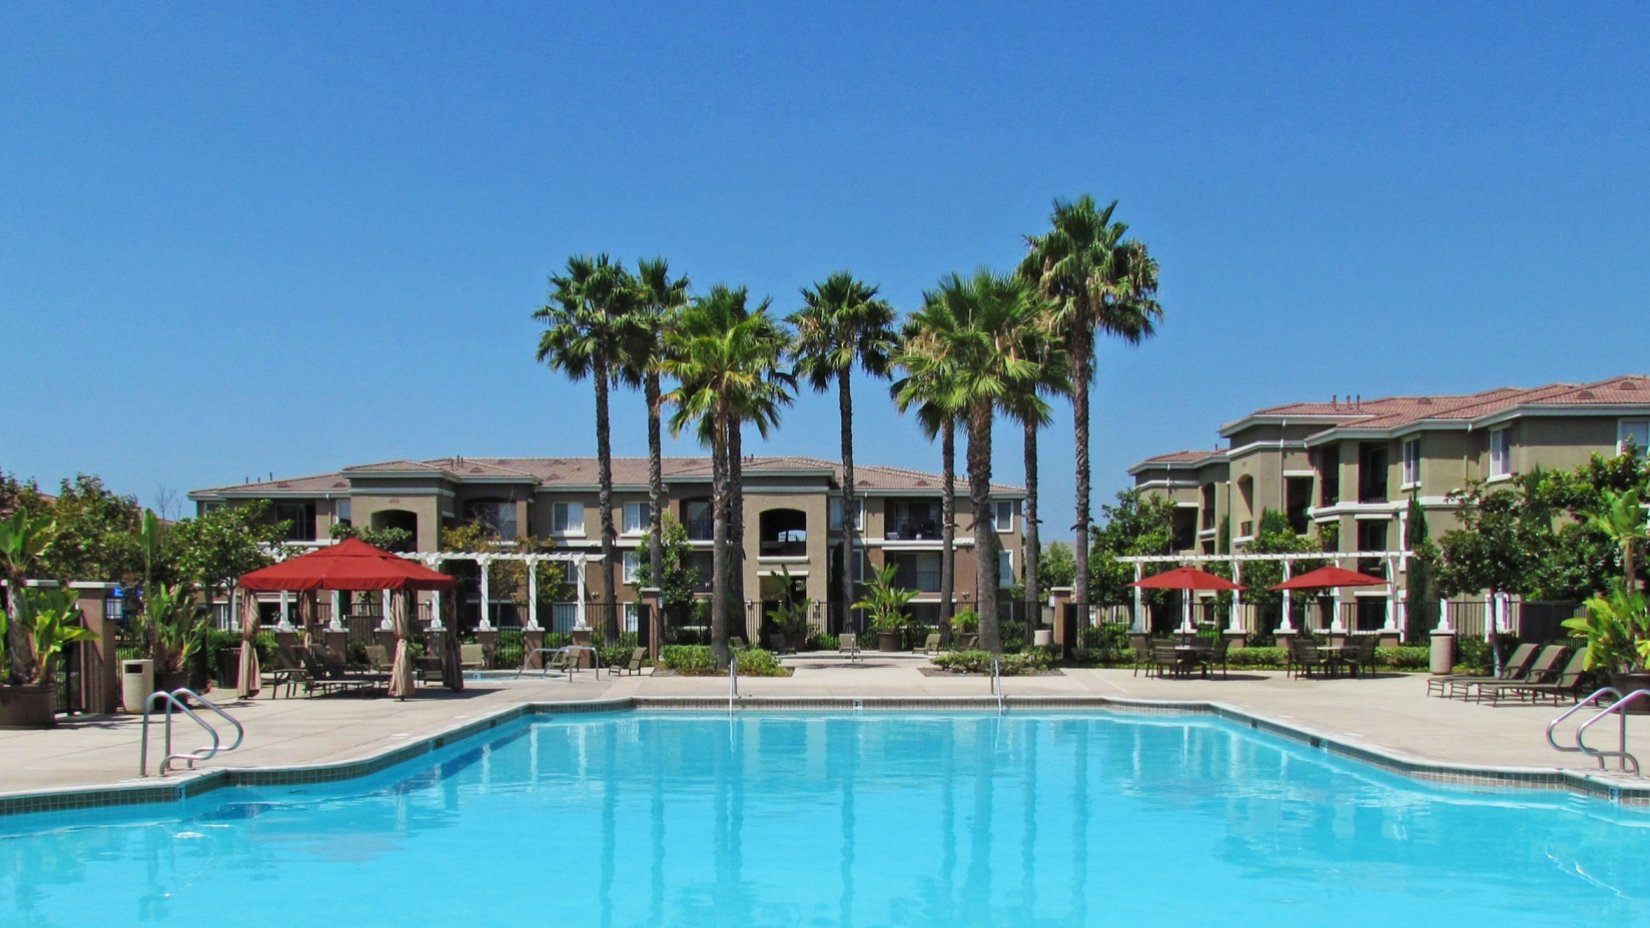 Apartments in Moorpark, Moorpark California Apartments, Moorpark Luxury Apartments, Moorpark  Apartments for rent, Moorpark Apartments, Moorpark Rentals